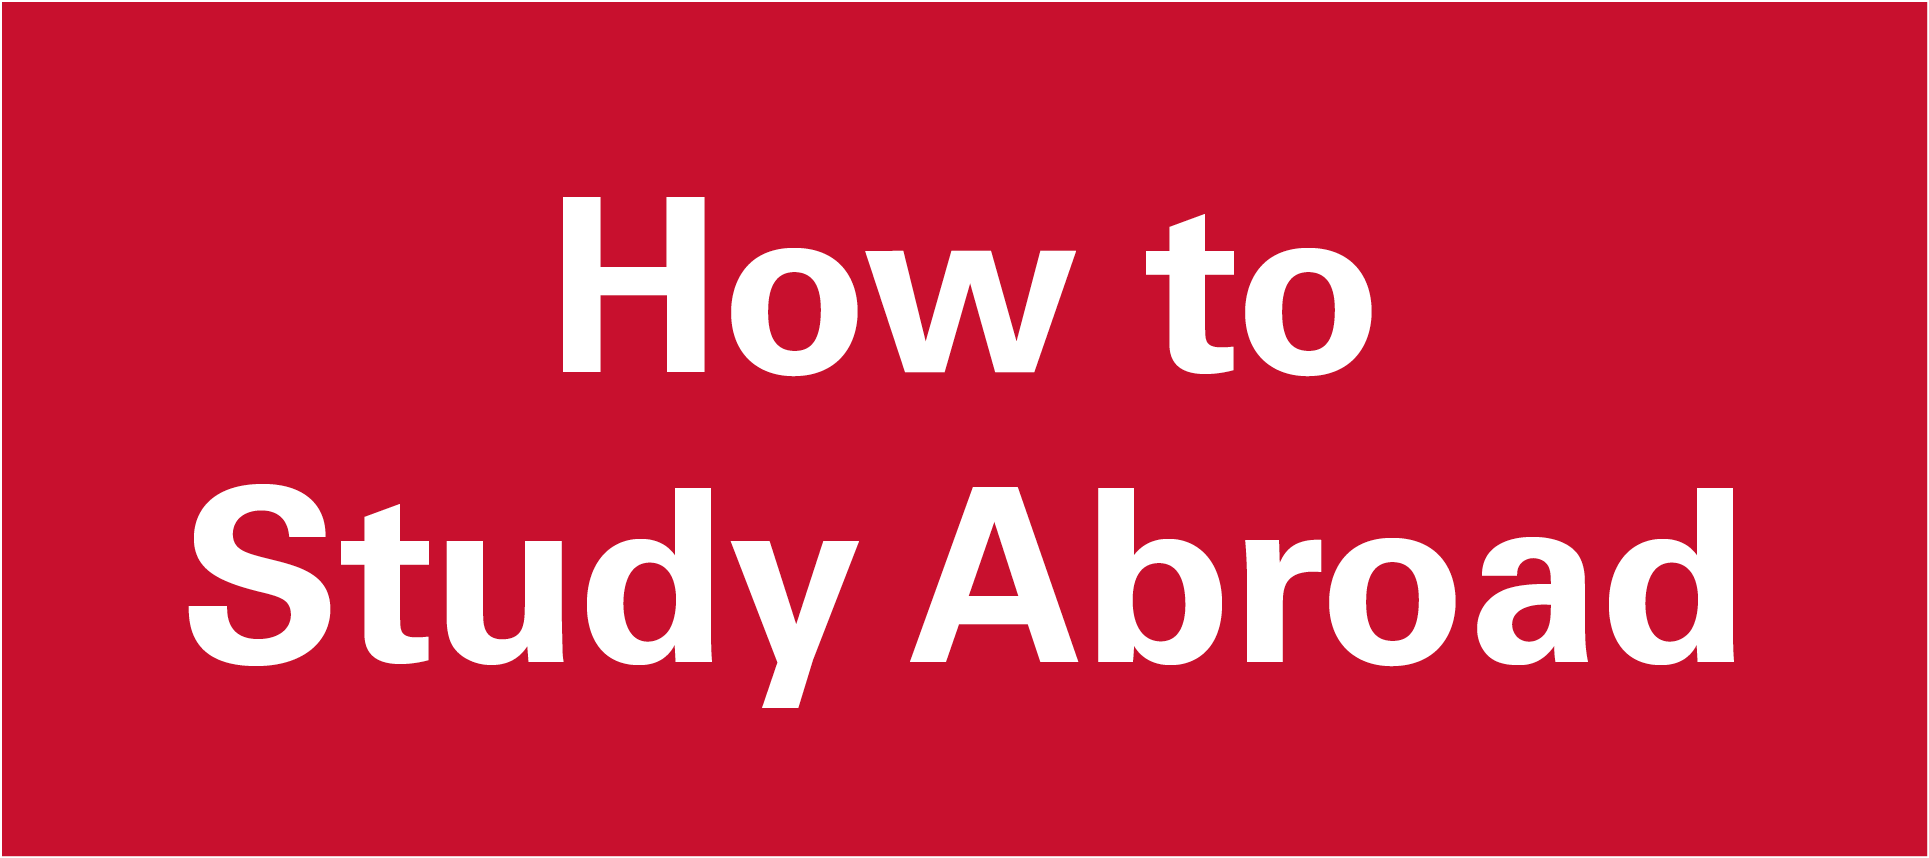 Study Abroad HOW